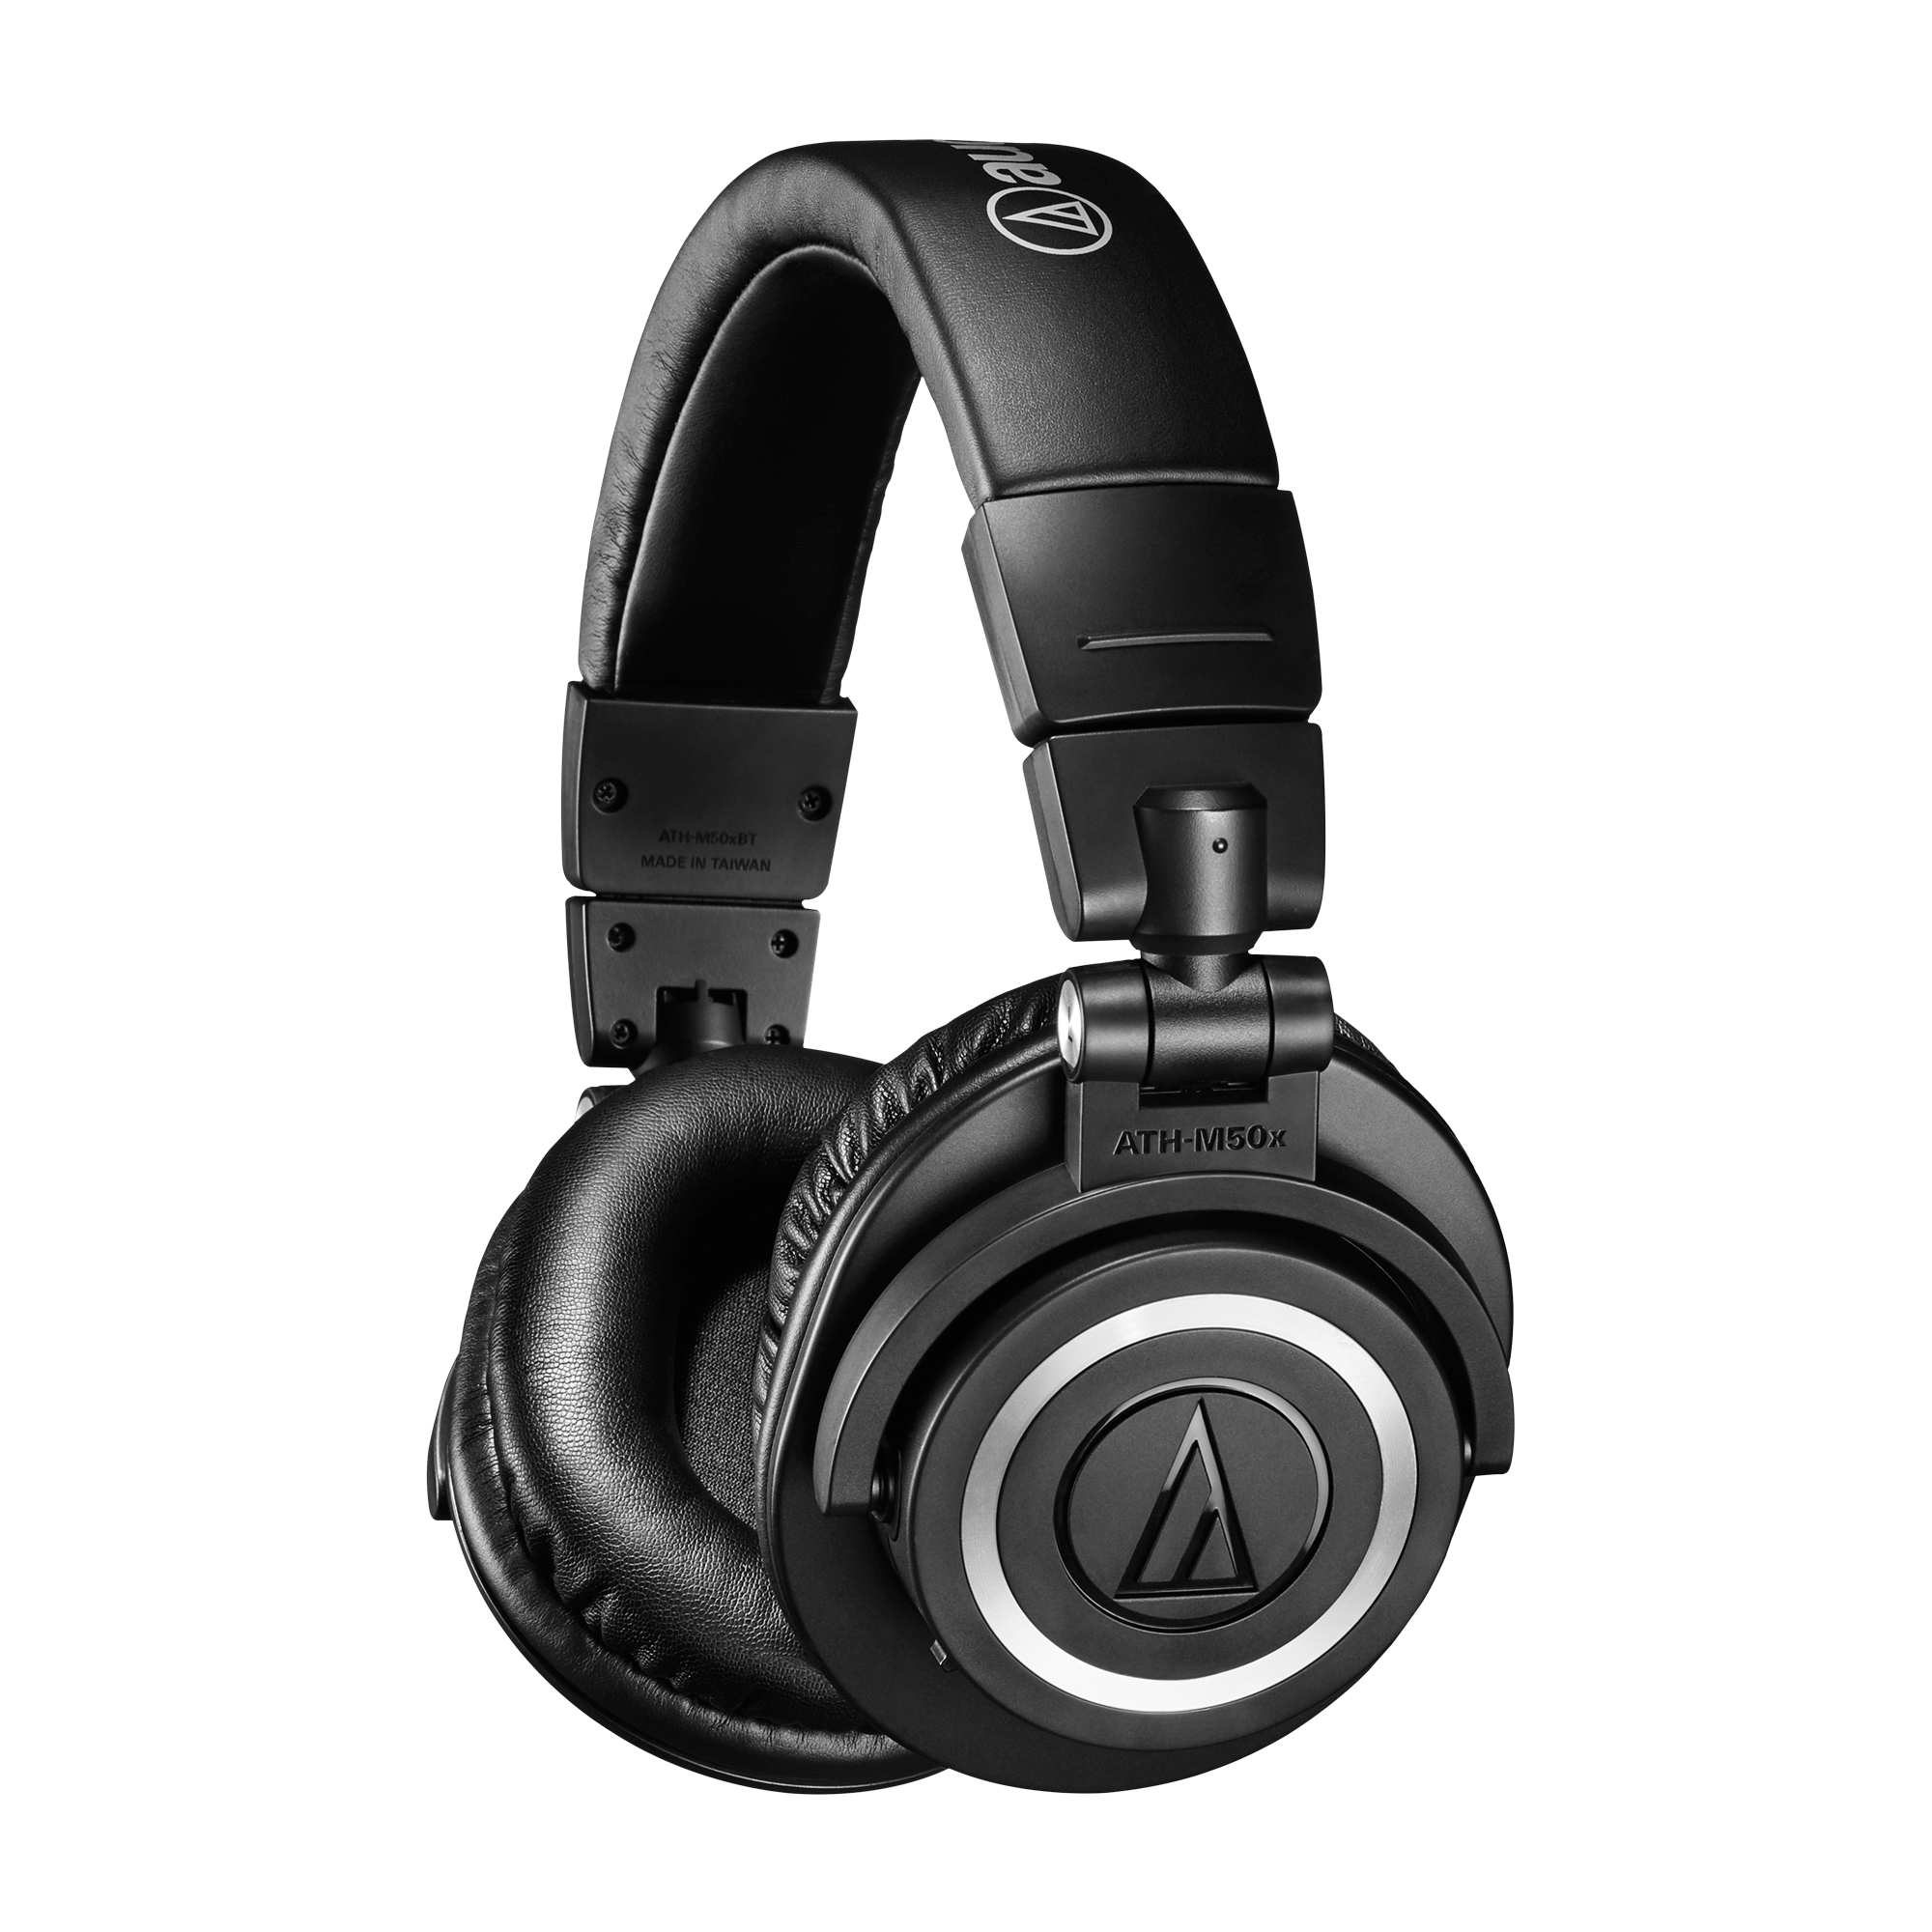 ATH-M50xBT - Wireless Over-Ear Headphones | Audio-Technica